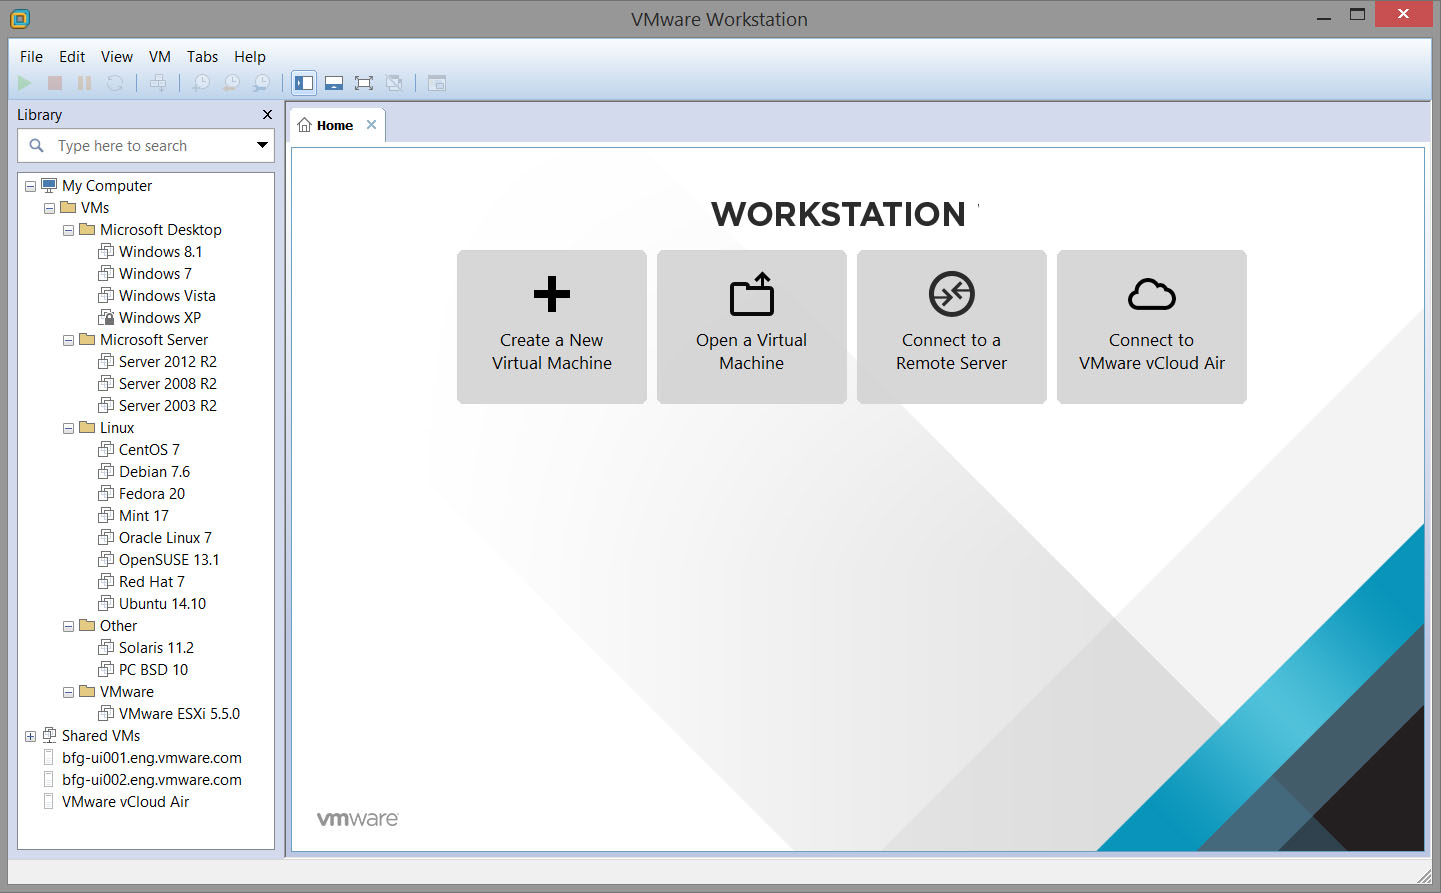 vmware-workstation-pro-2017